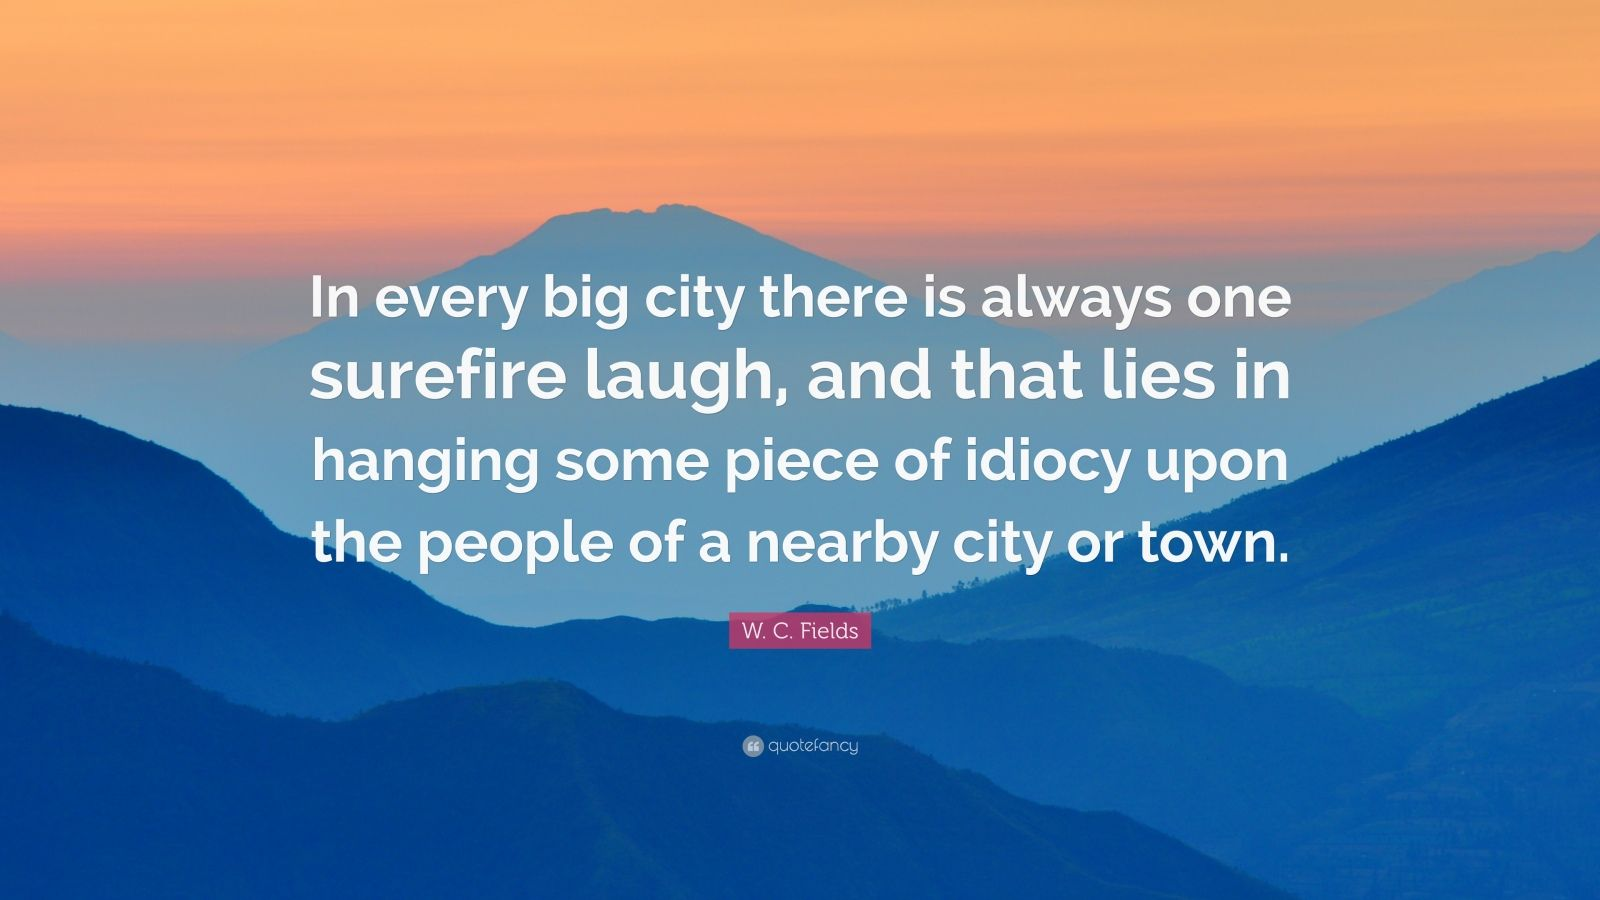 """W. C. Fields Quote: """"In every big city there is always one surefire laugh, and that lies in hanging some piece of idiocy upon the people of a nearby city or town."""""""